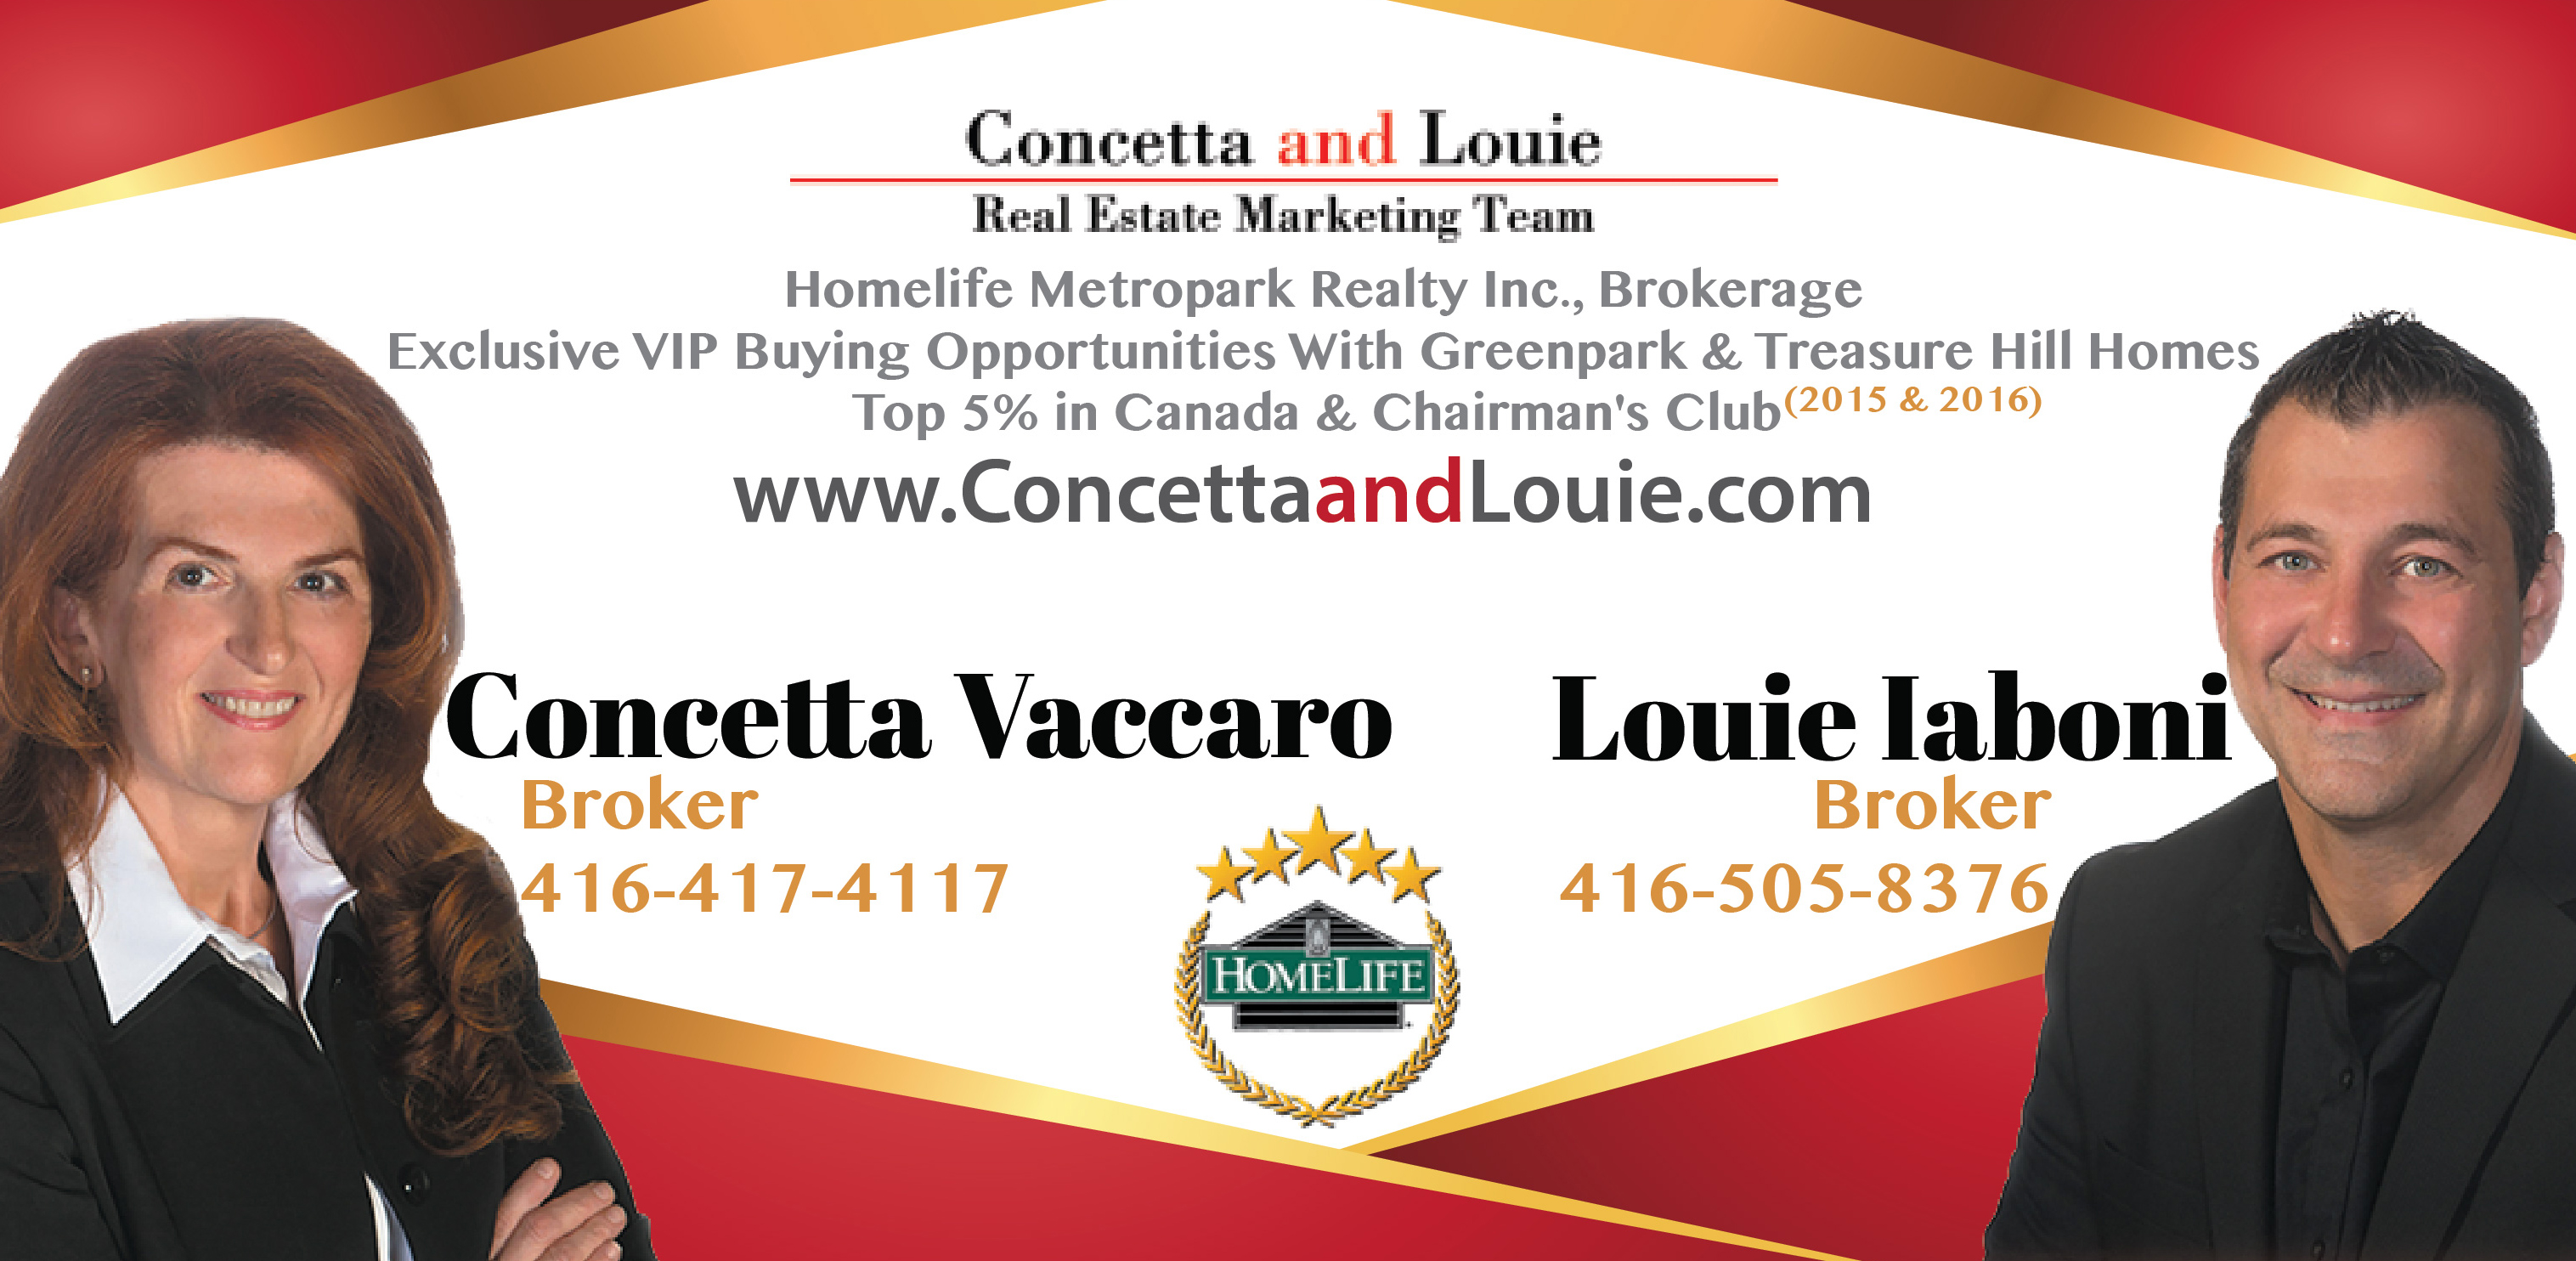 Concetta and Louie are Brokers at Homelife Metropark Realty Inc/Real estate/Louie Iaboni/Broker/Vip offer/Homelife/builder